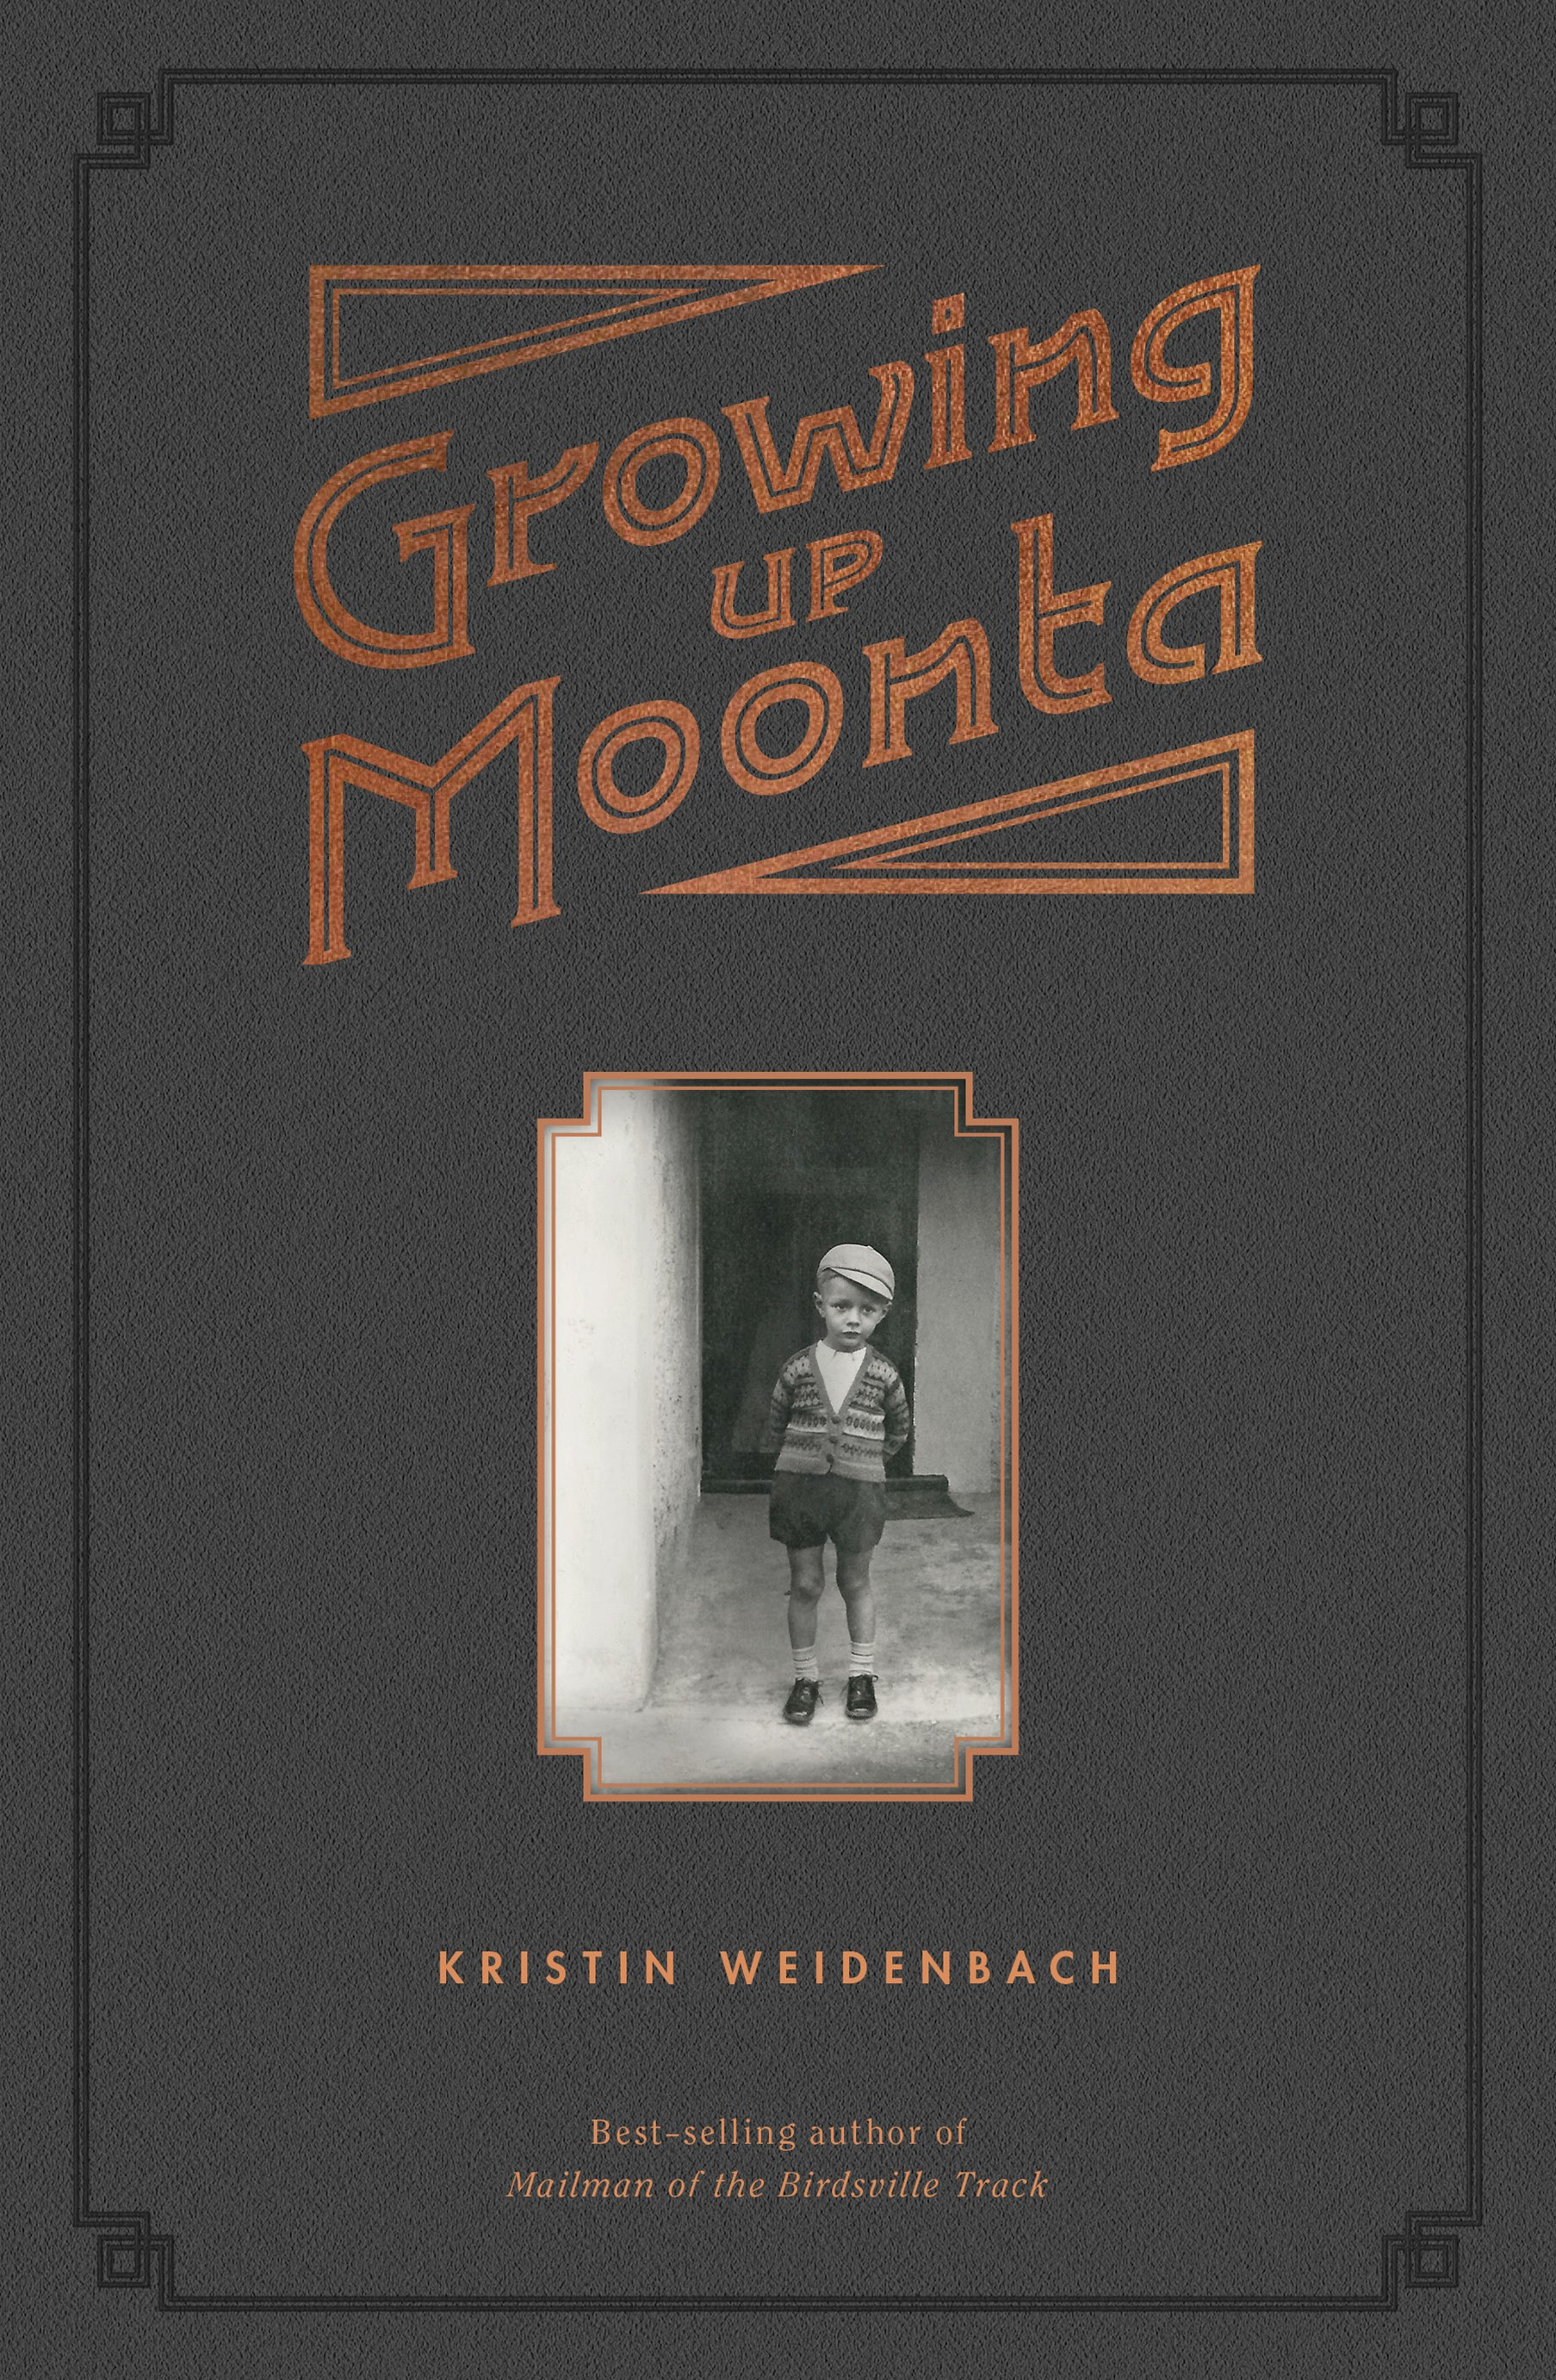 Growing Up Moonta